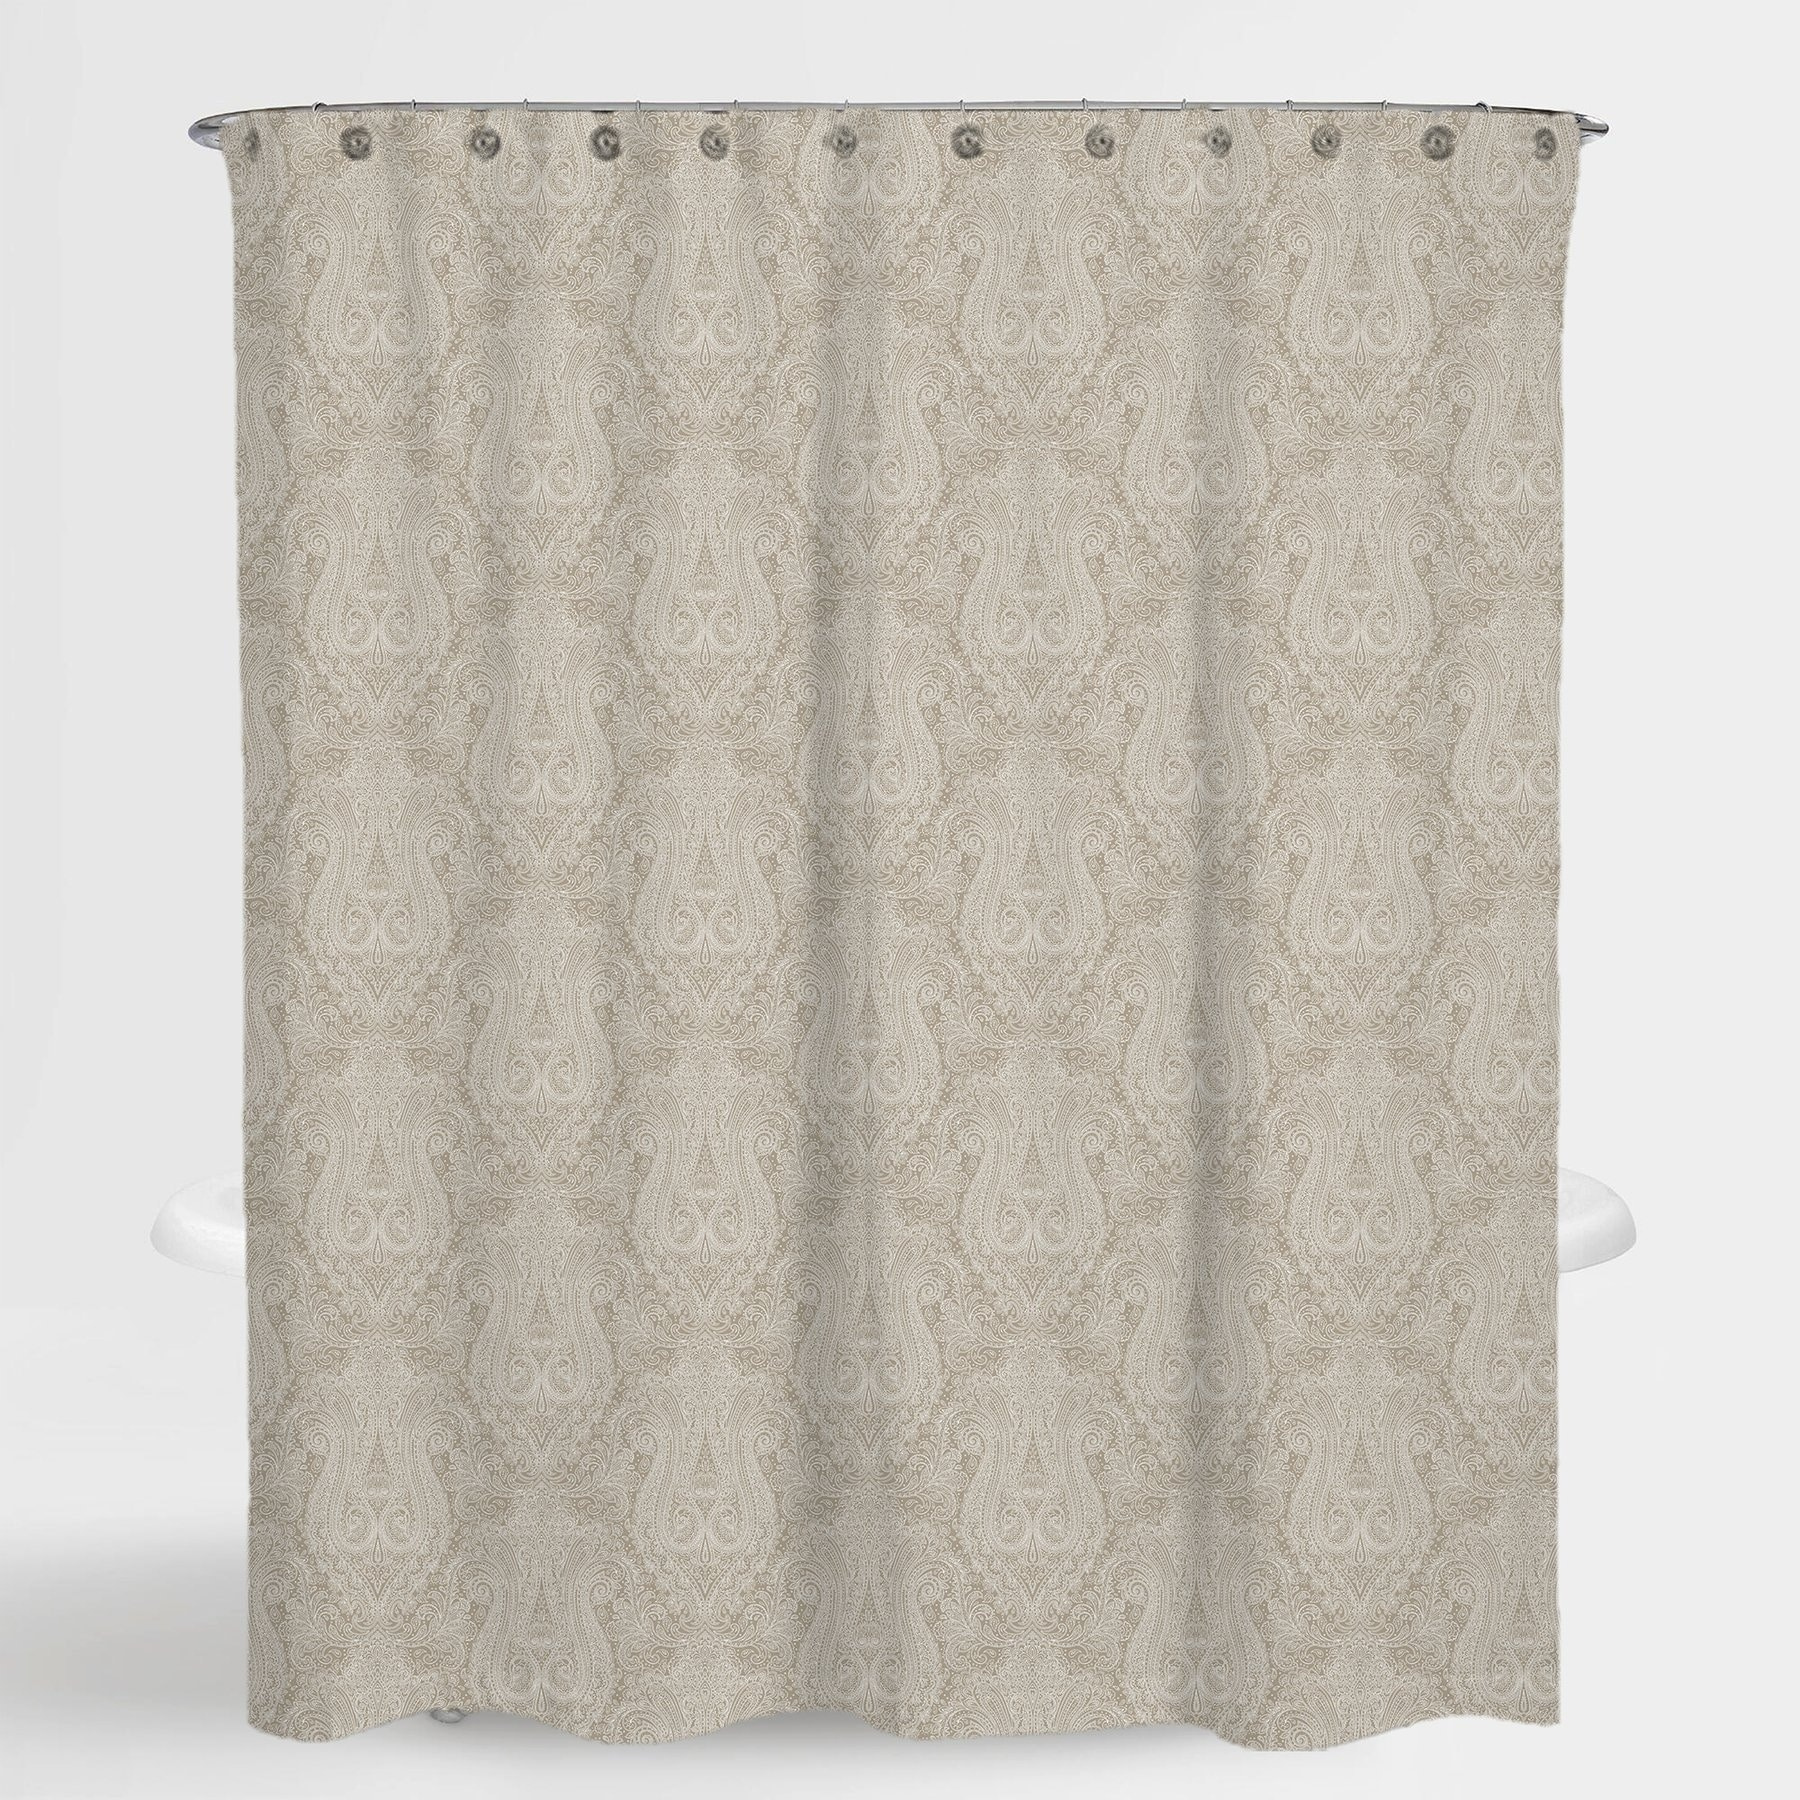 Paisley Beige Hailey Water Repellent Shower Curtain 72 X72 Free 12 Piece Shower Curtain Rings